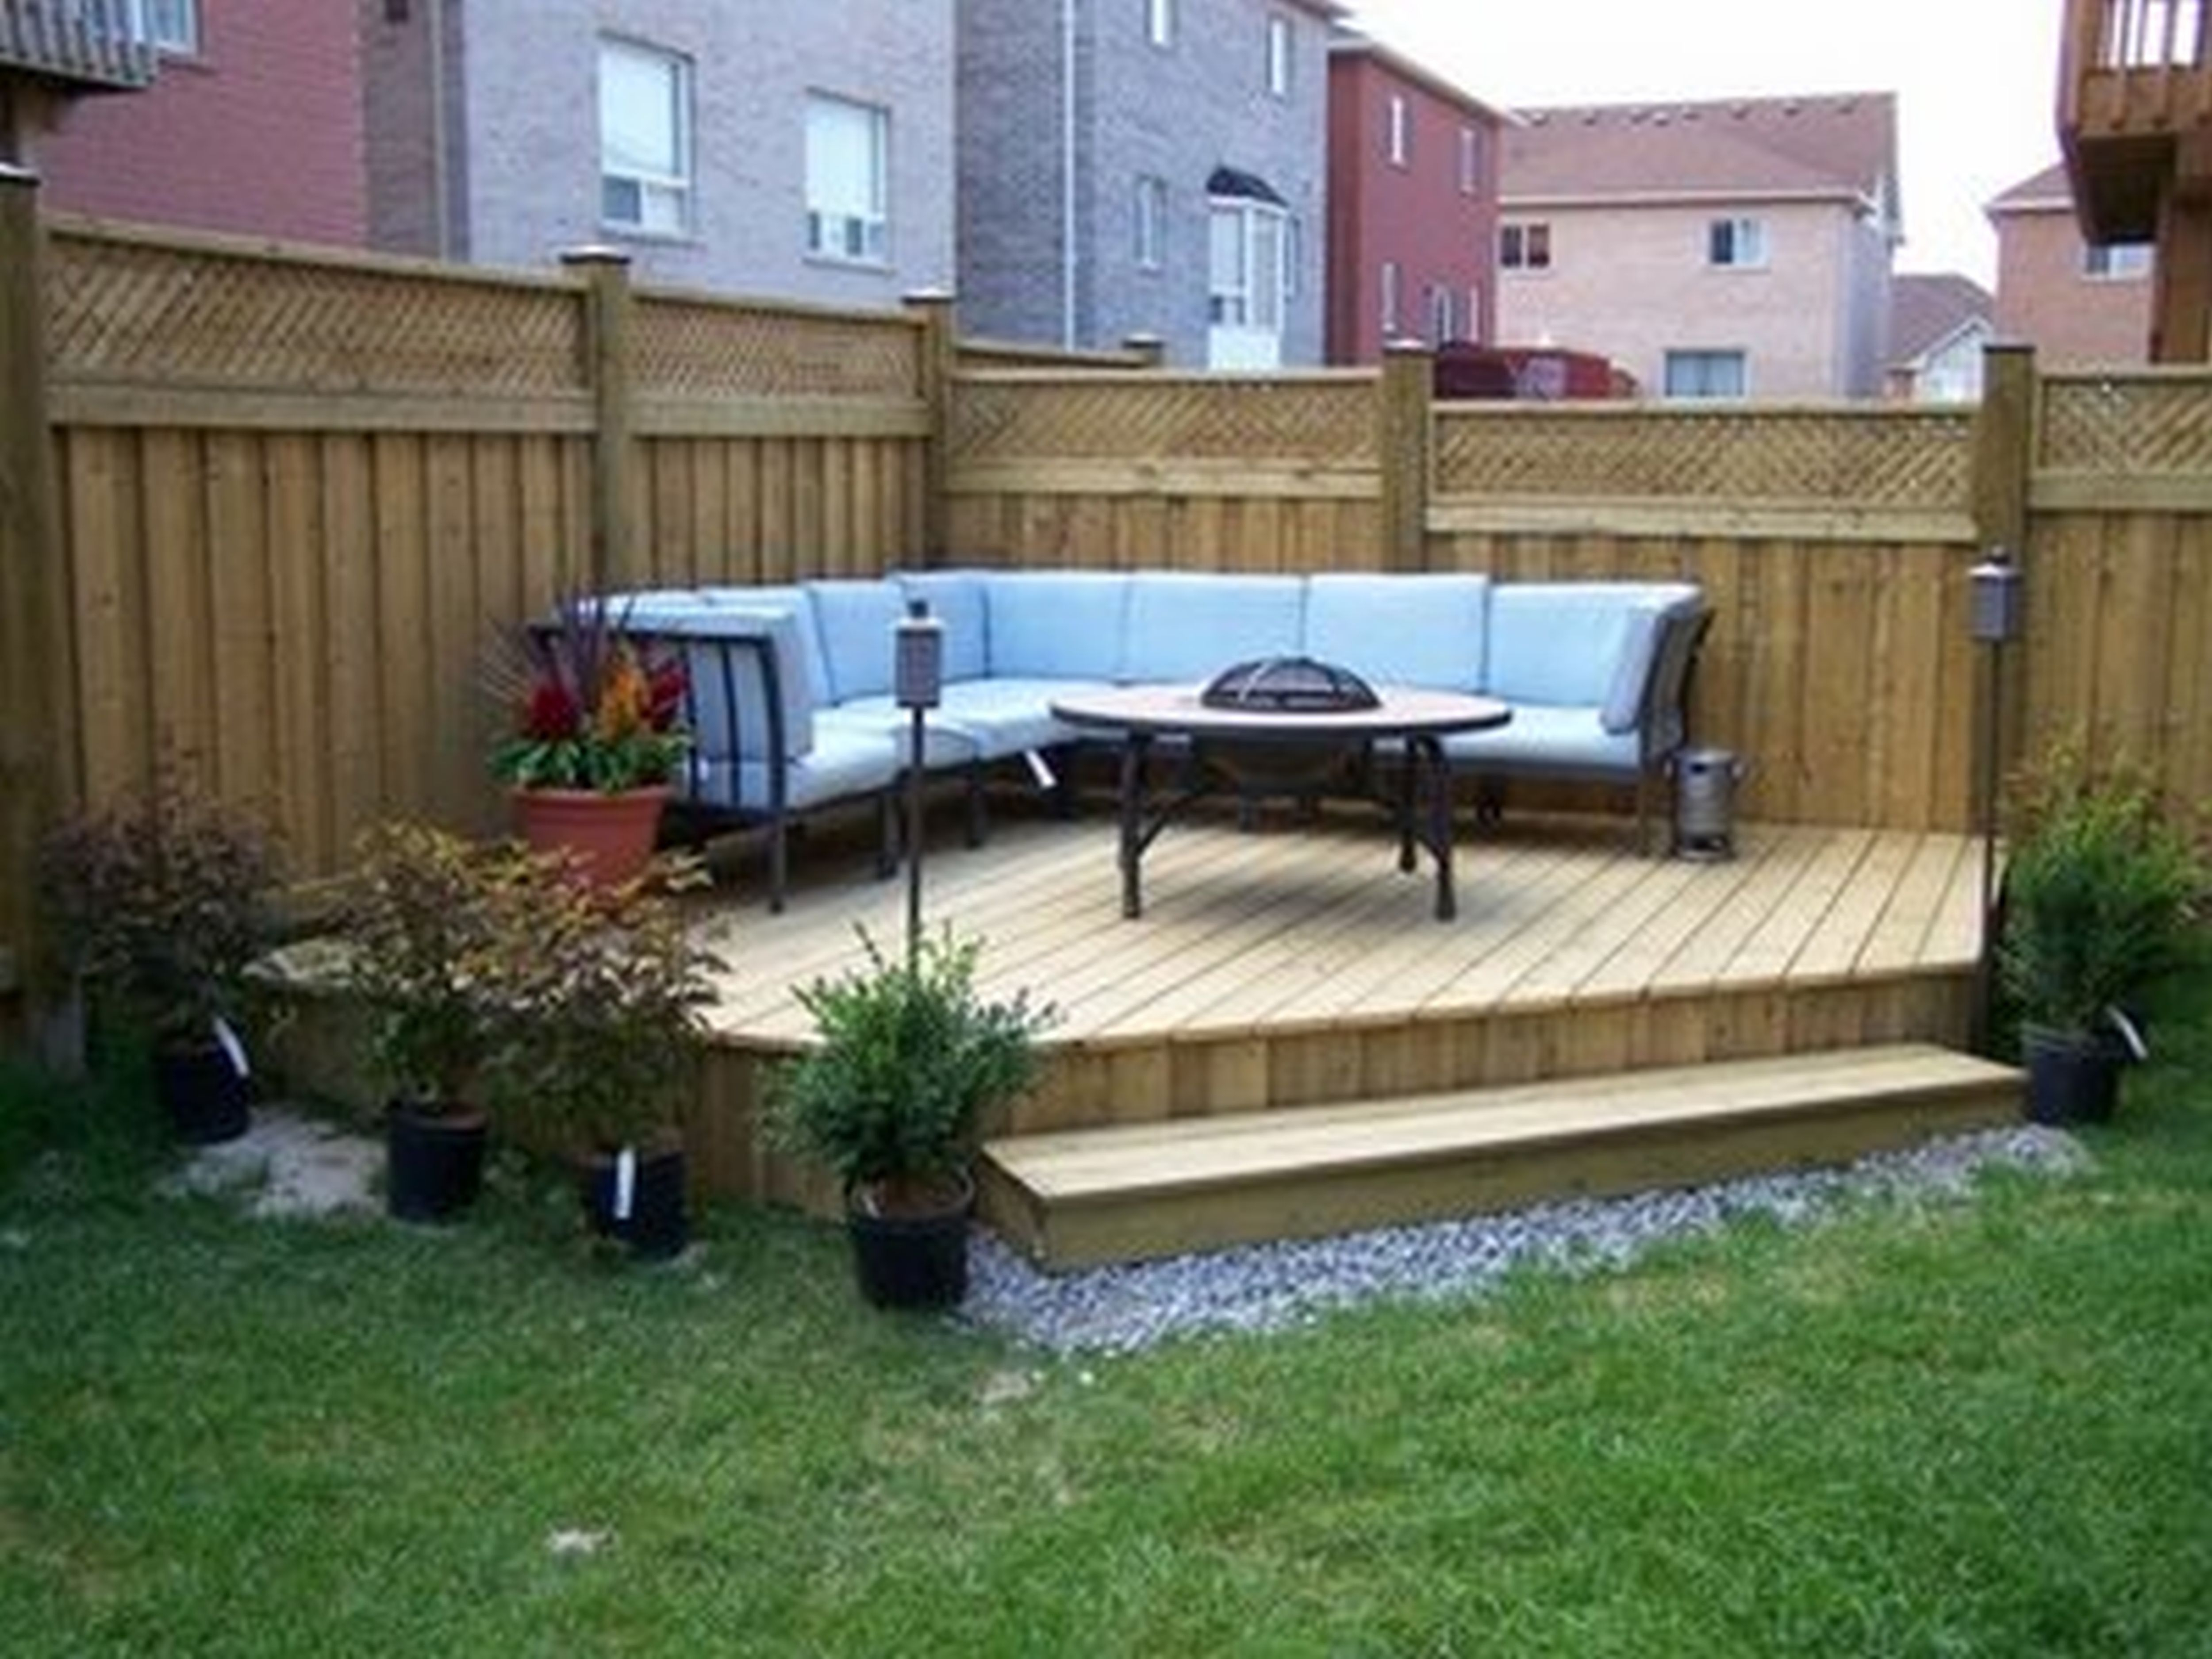 Backyard Decorating Ideas On A Budget Interior Design Inexpensive intended for 12 Some of the Coolest Concepts of How to Improve Backyard Decorating Ideas On A Budget